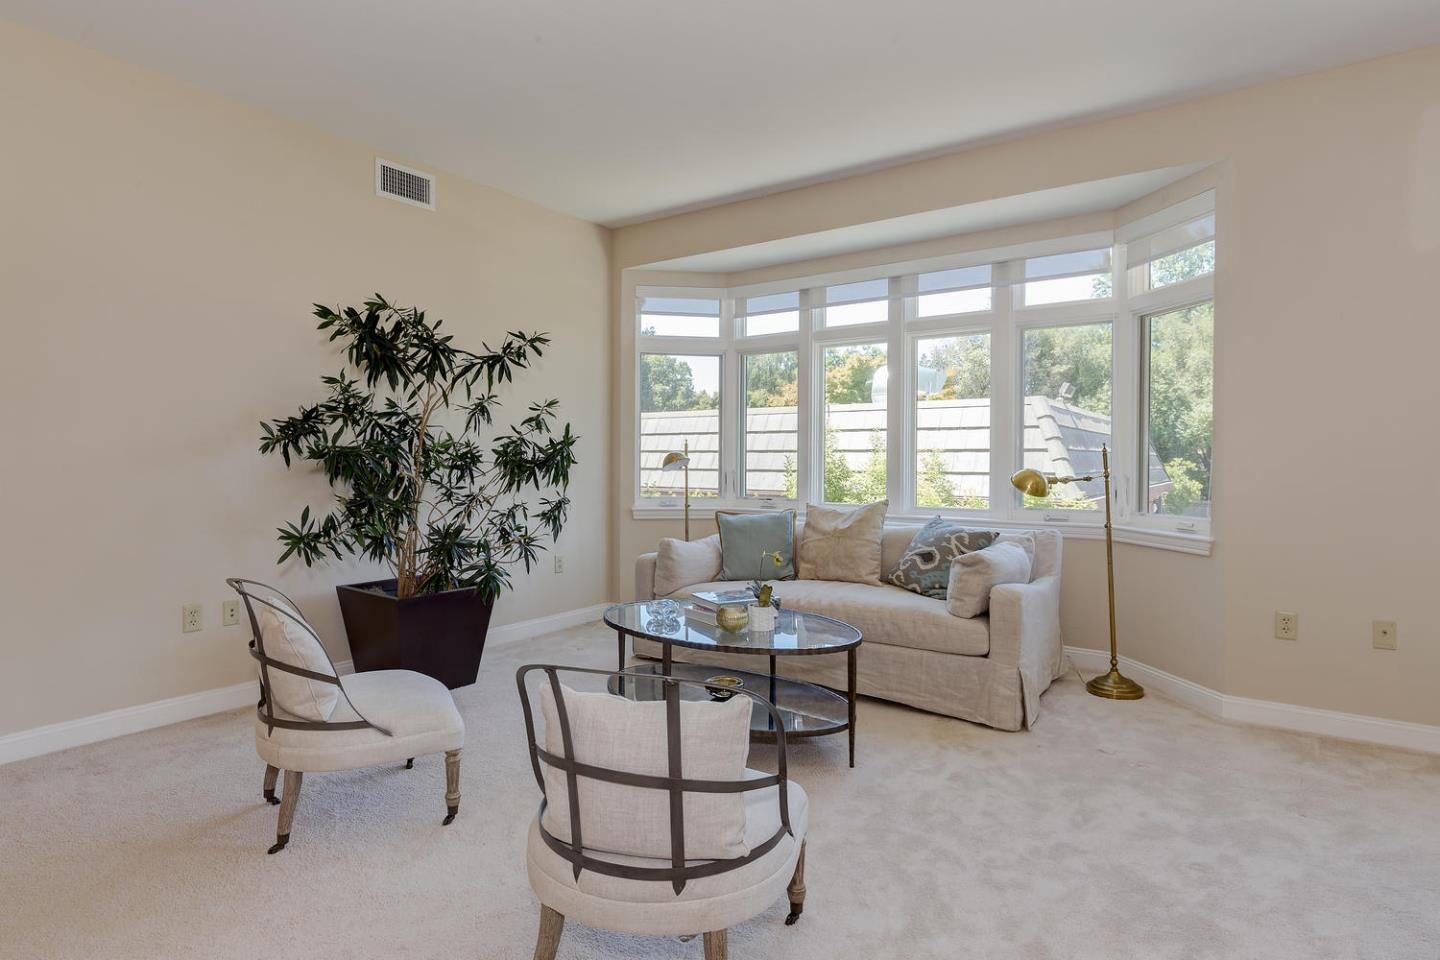 Additional photo for property listing at 10 Crystal Springs Road 10 Crystal Springs Road San Mateo, カリフォルニア 94402 アメリカ合衆国